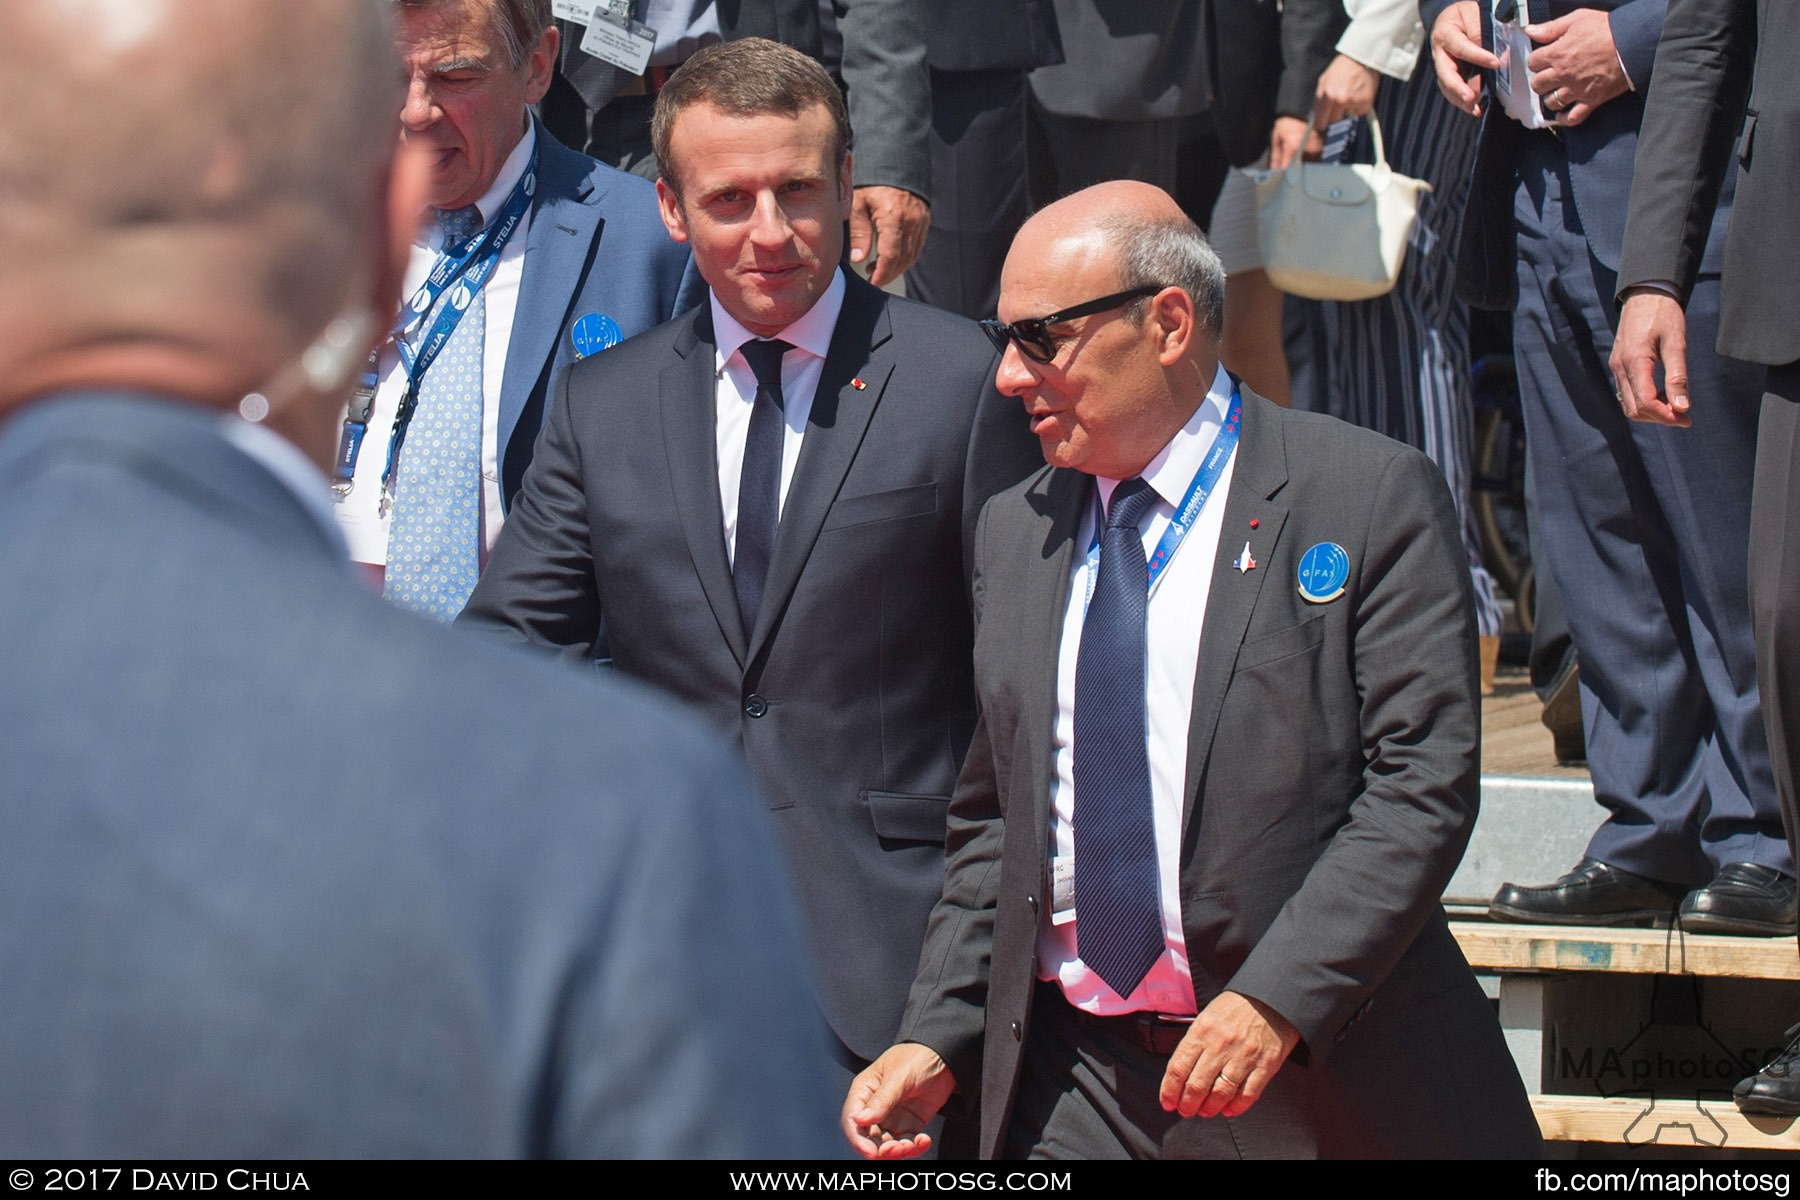 6. French President Emmanuel Macron walks with Dassault Aviation CEO Eric Trappier after watching the demonstration flights at the GIFAS Chalet. Macron landed at Le  Bourget in an Airbus A400M military transport plane to launch the Paris Air Show.